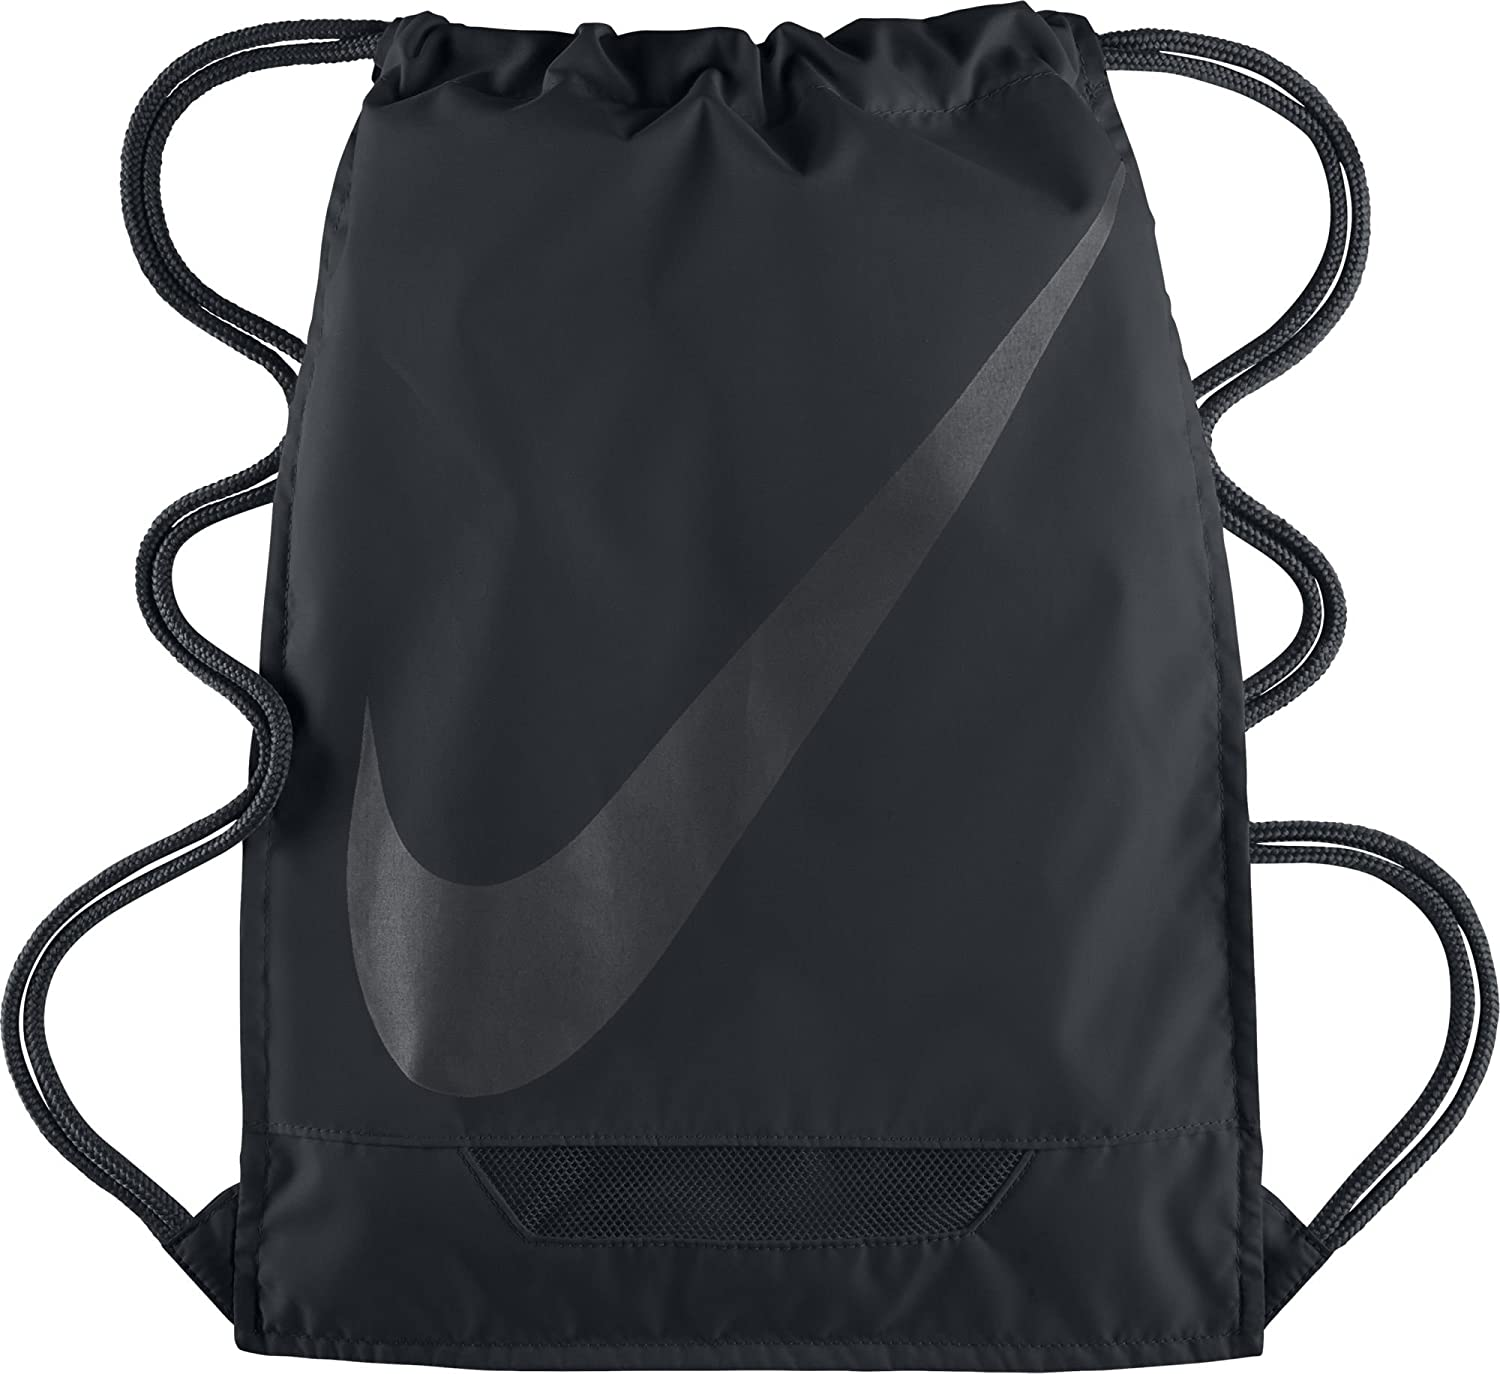 Amazon Best Sellers: Best Soccer Equipment Bags